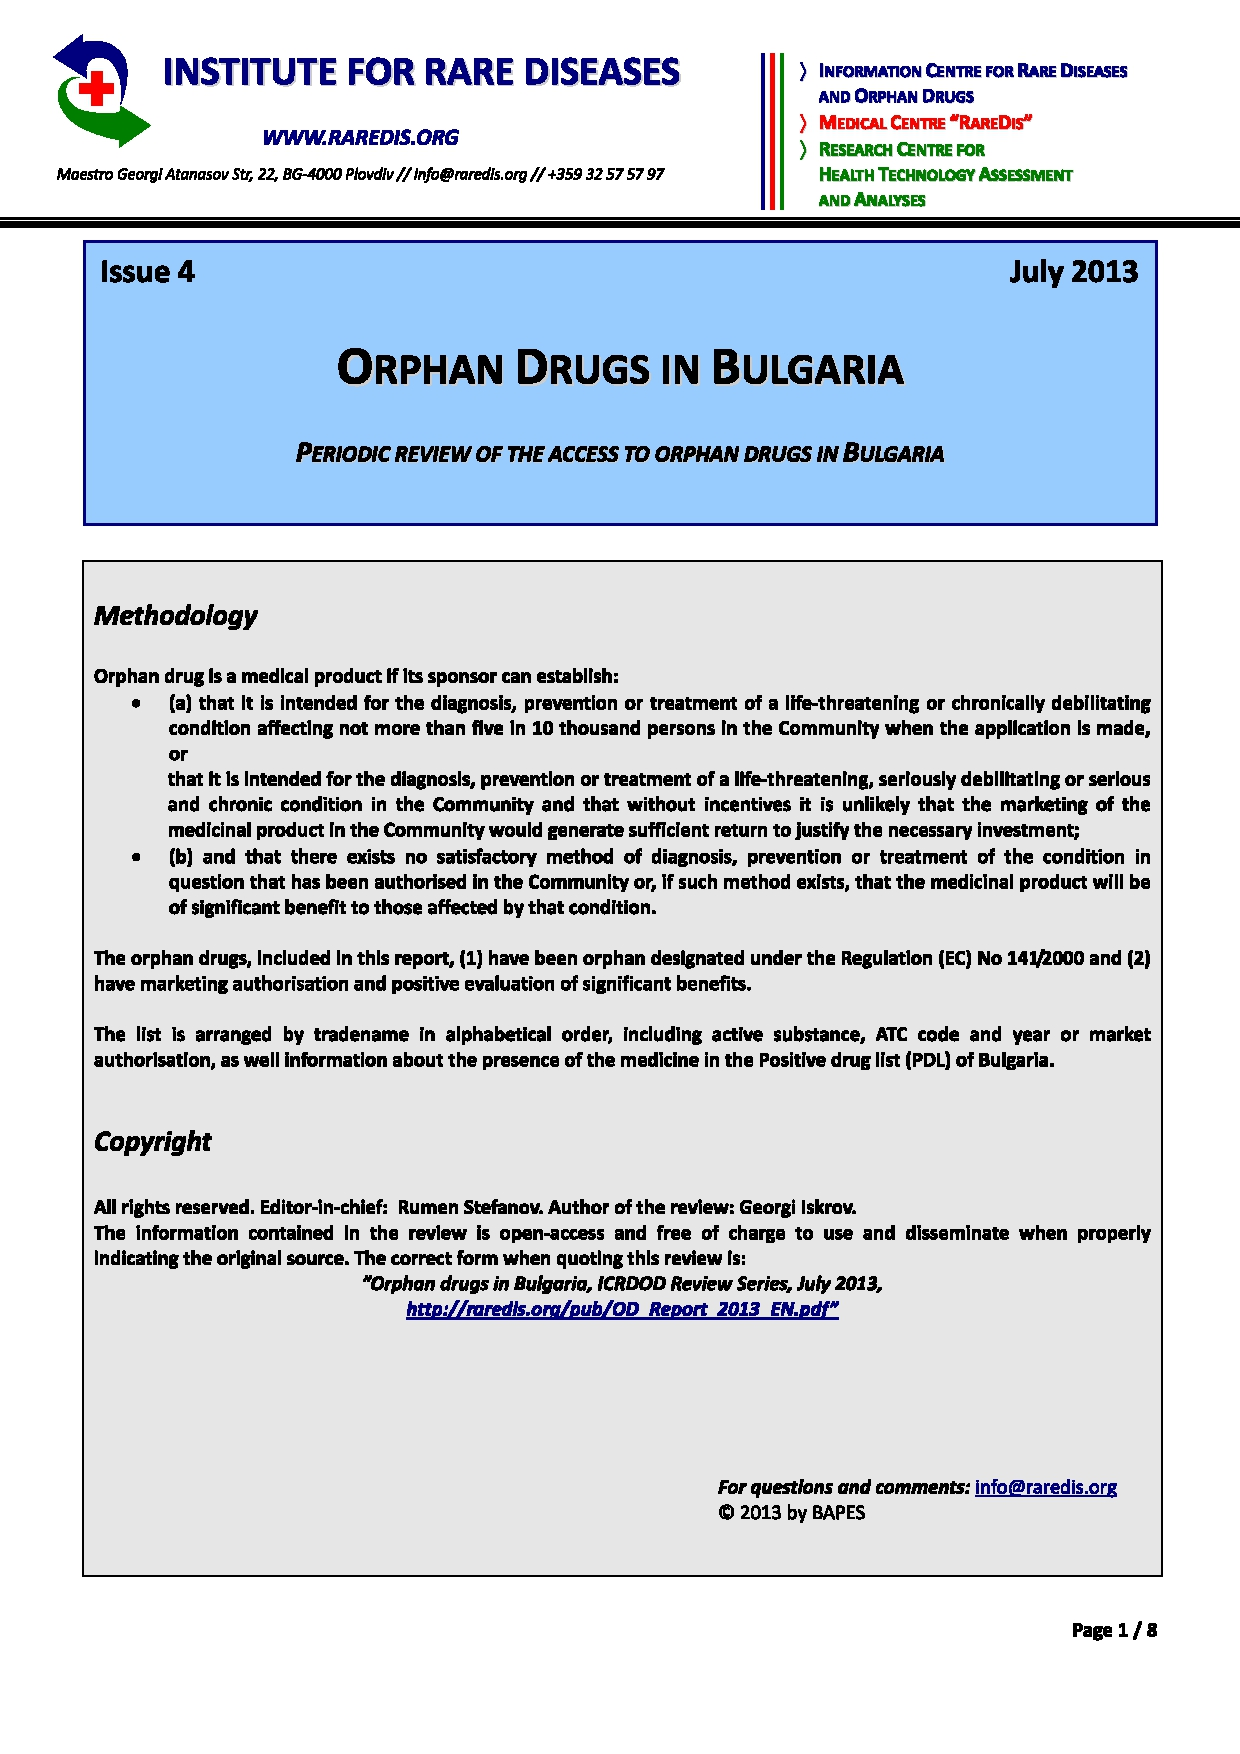 Orphan drugs in Bulgaria, issue 4/2013